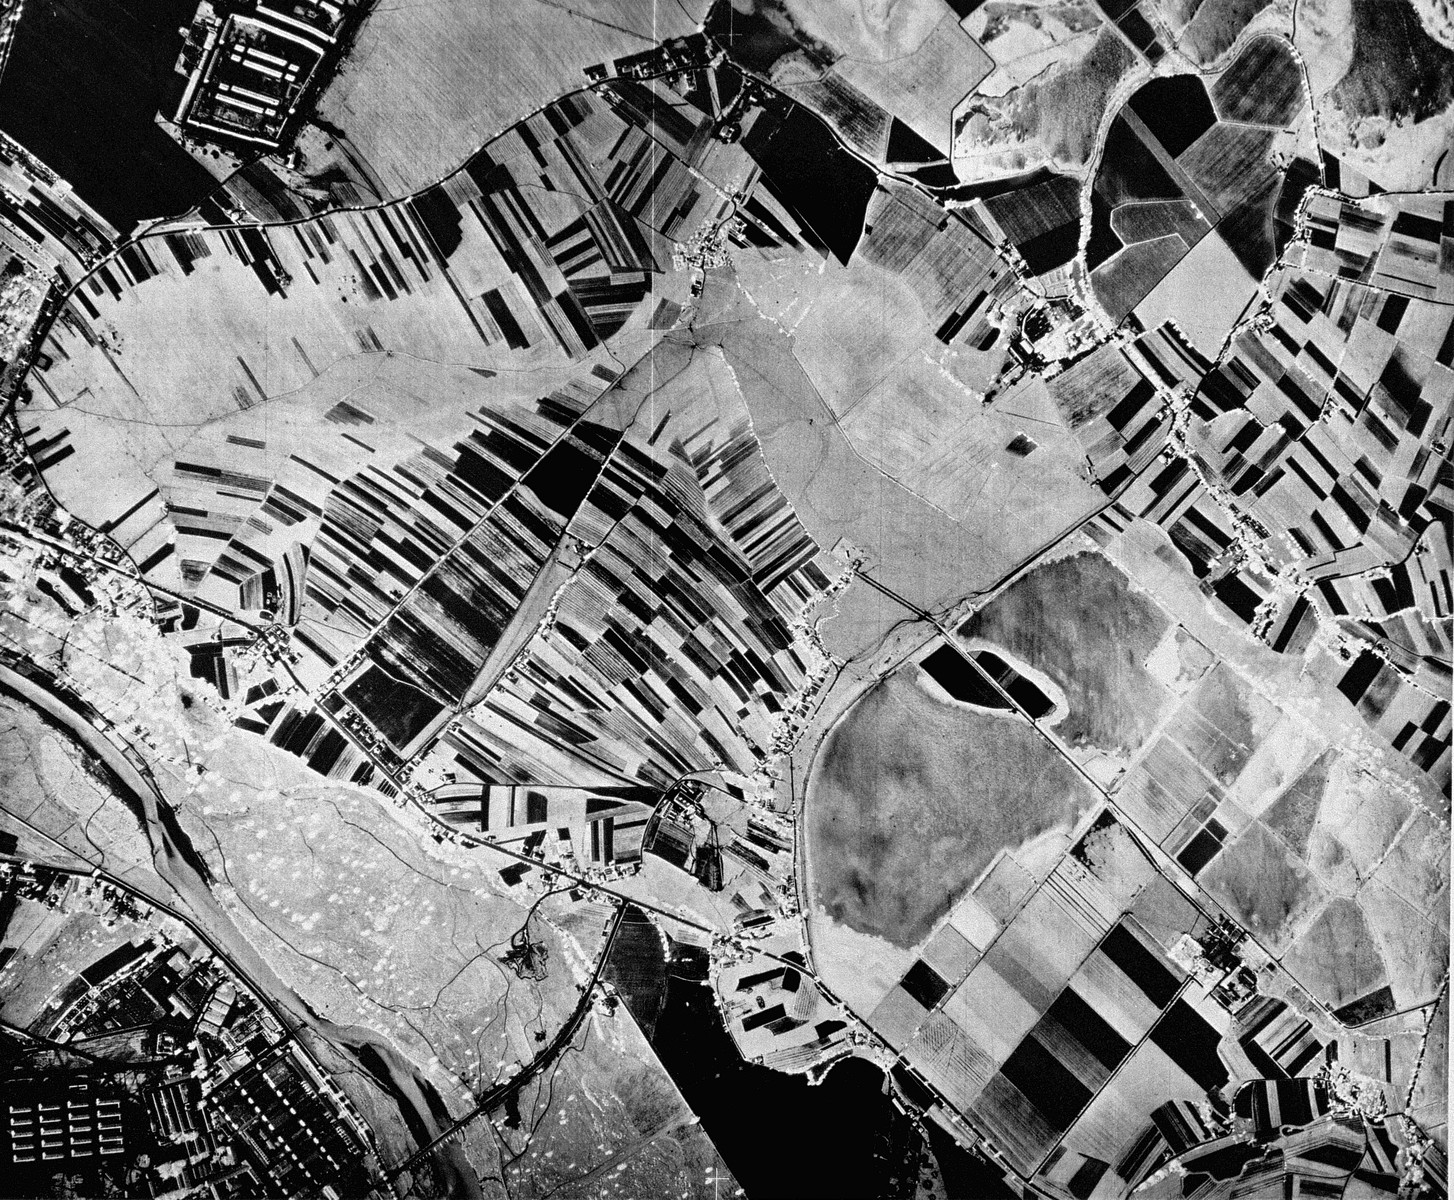 An aerial reconnaissance photograph of the Auschwitz area showing a portion of Auschwitz I.